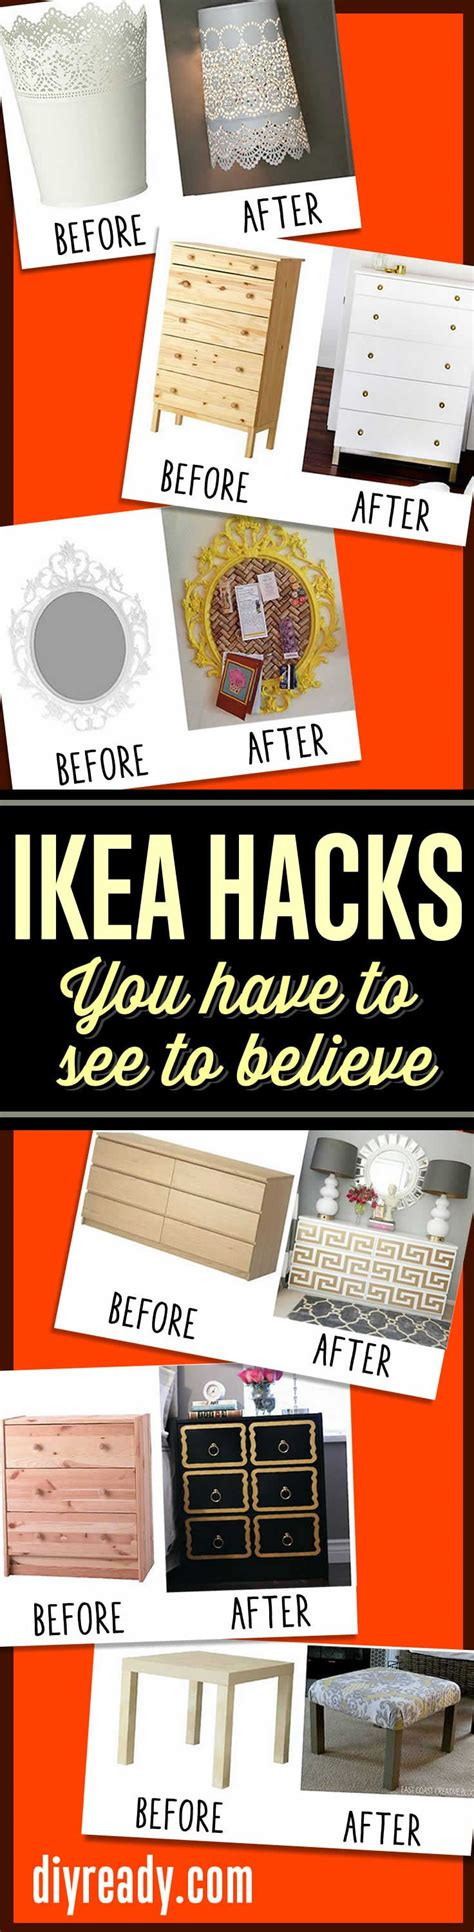 best ikea hacks 18 amazing ikea hacks for chic and functional pieces